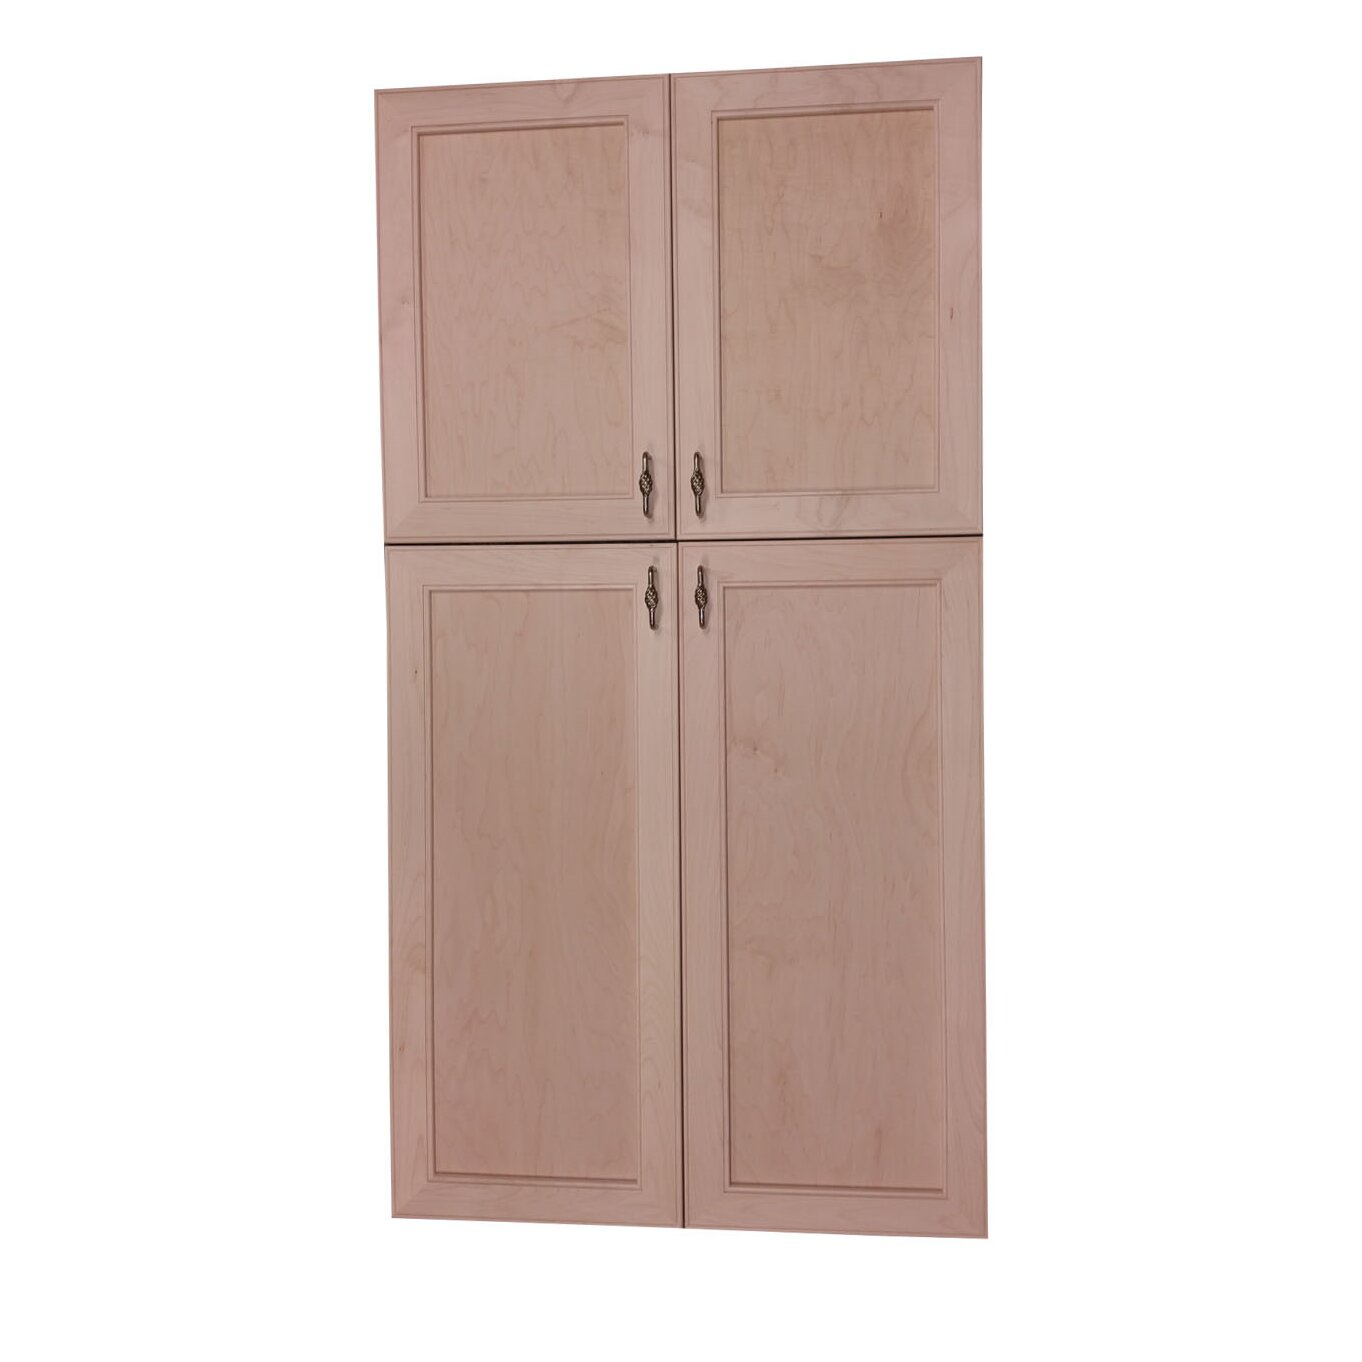 wg wood products kitchen pantry wayfair